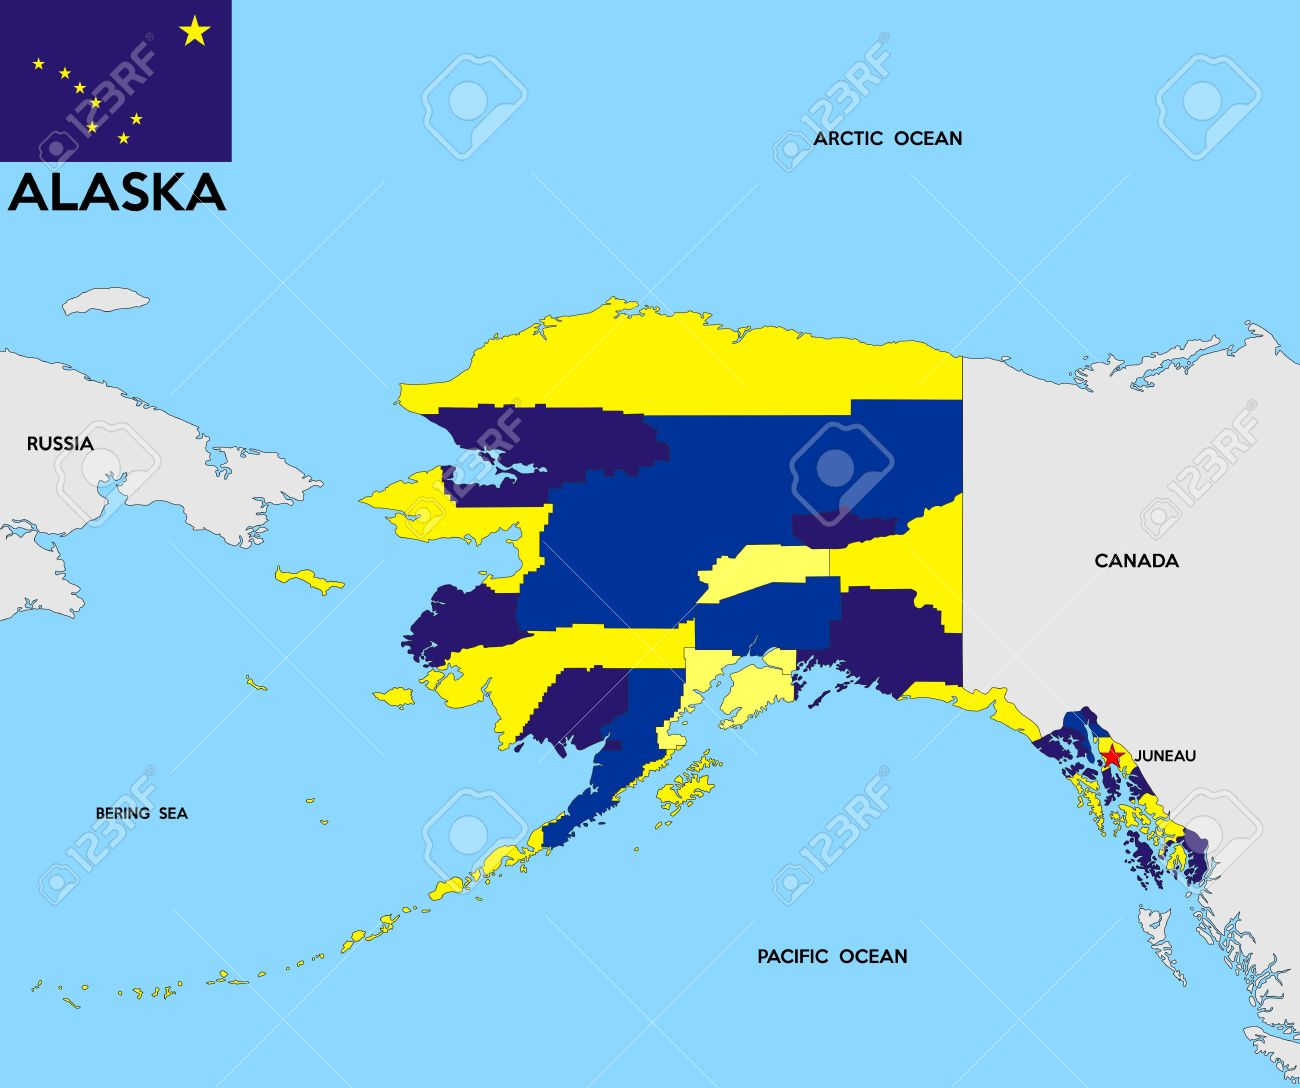 United States Of America Alaska Republic Political Map With Flag